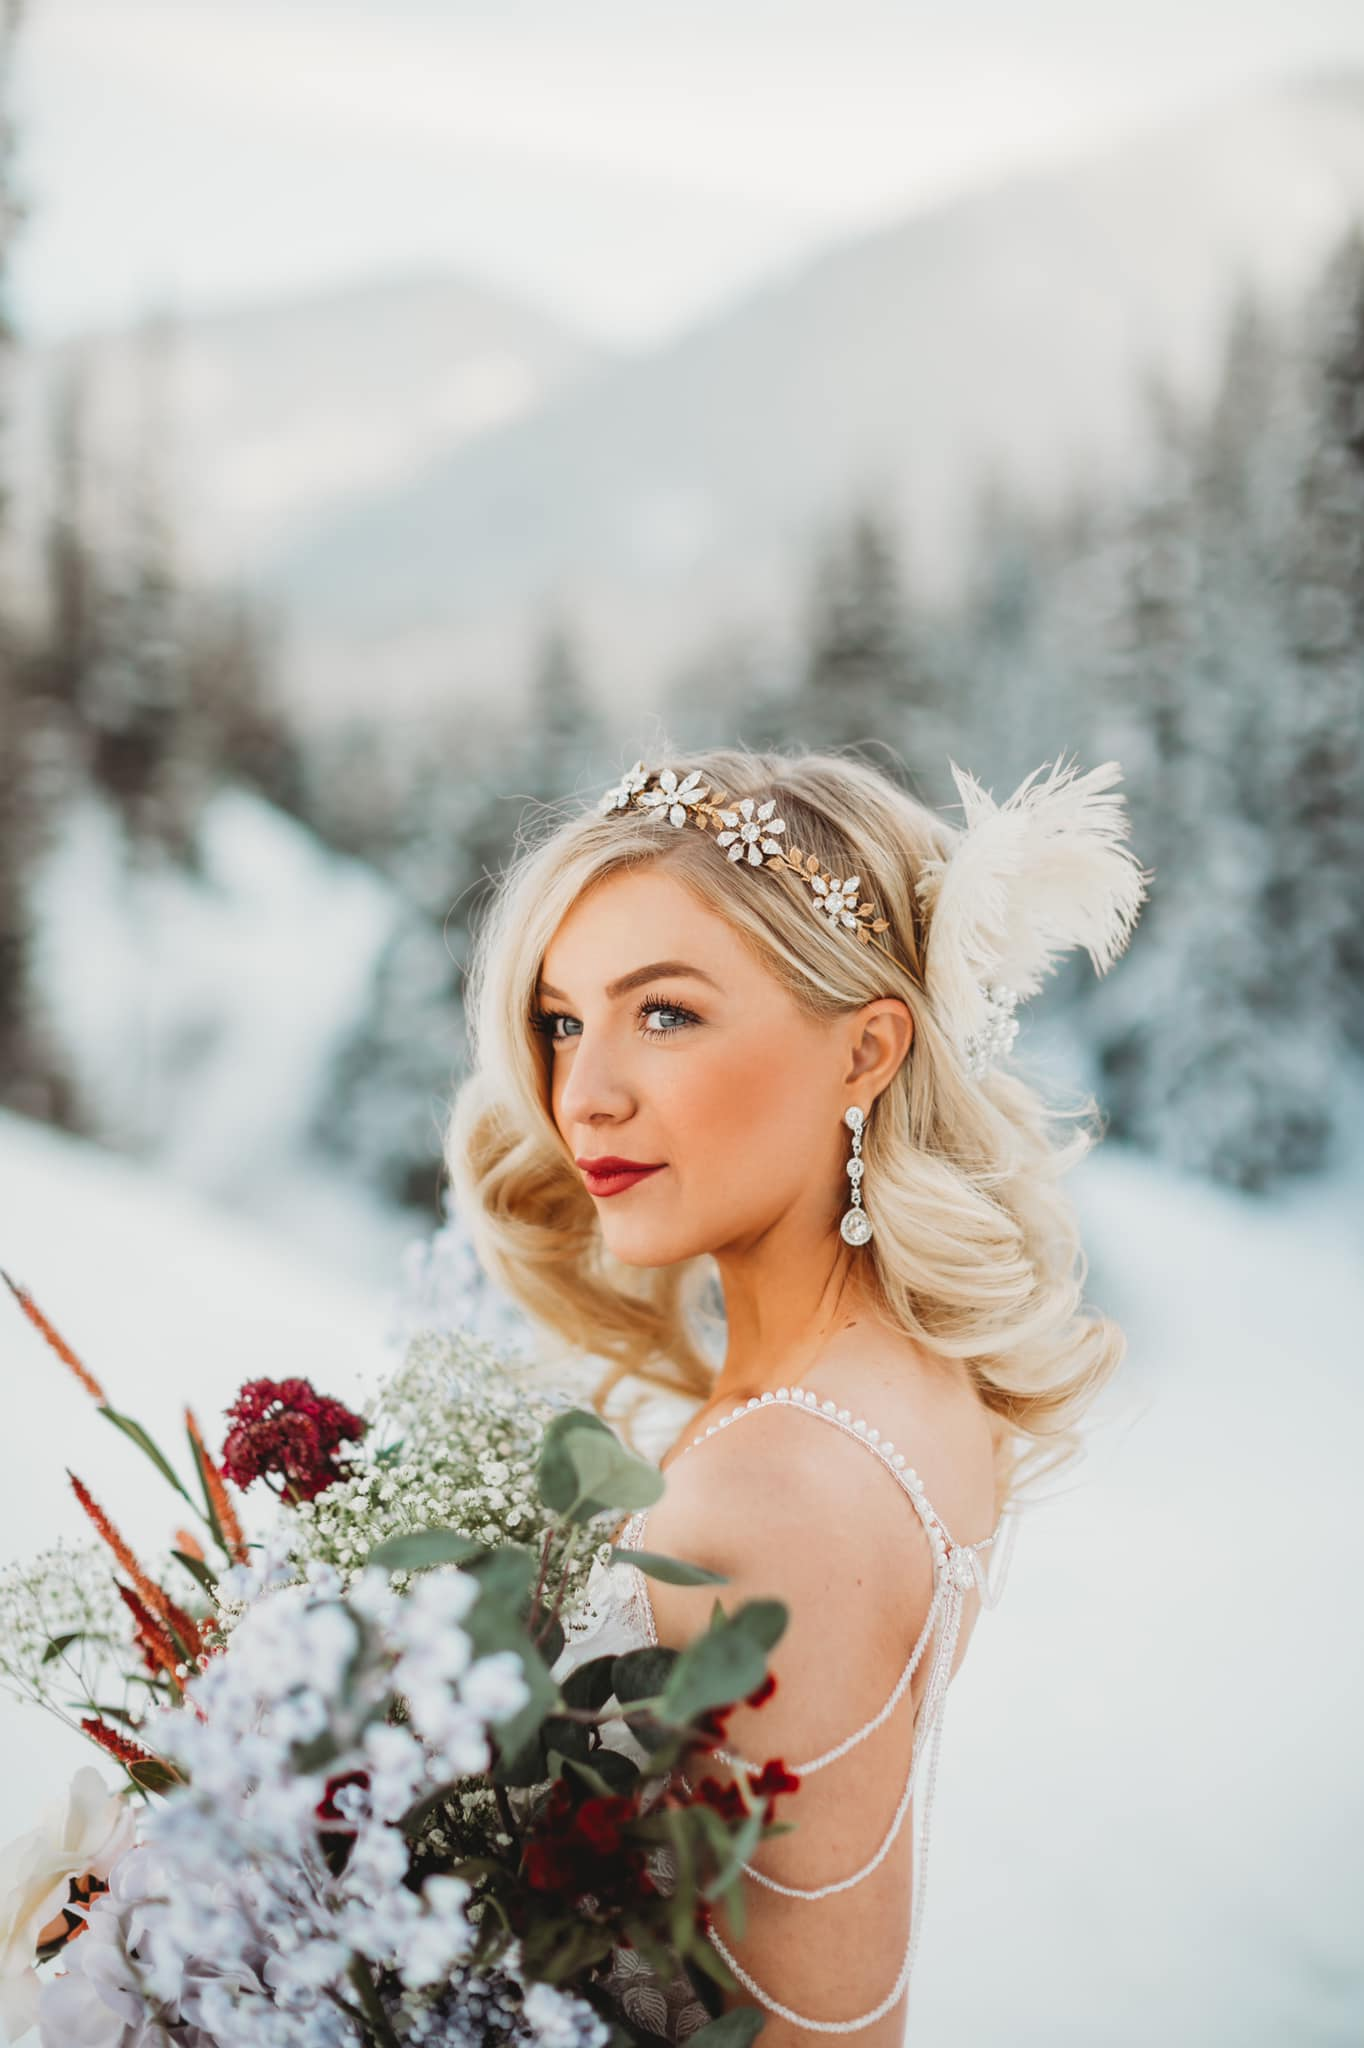 The Best Of 2020 - 24 Stunning Bridal Portraits From The LLF Community